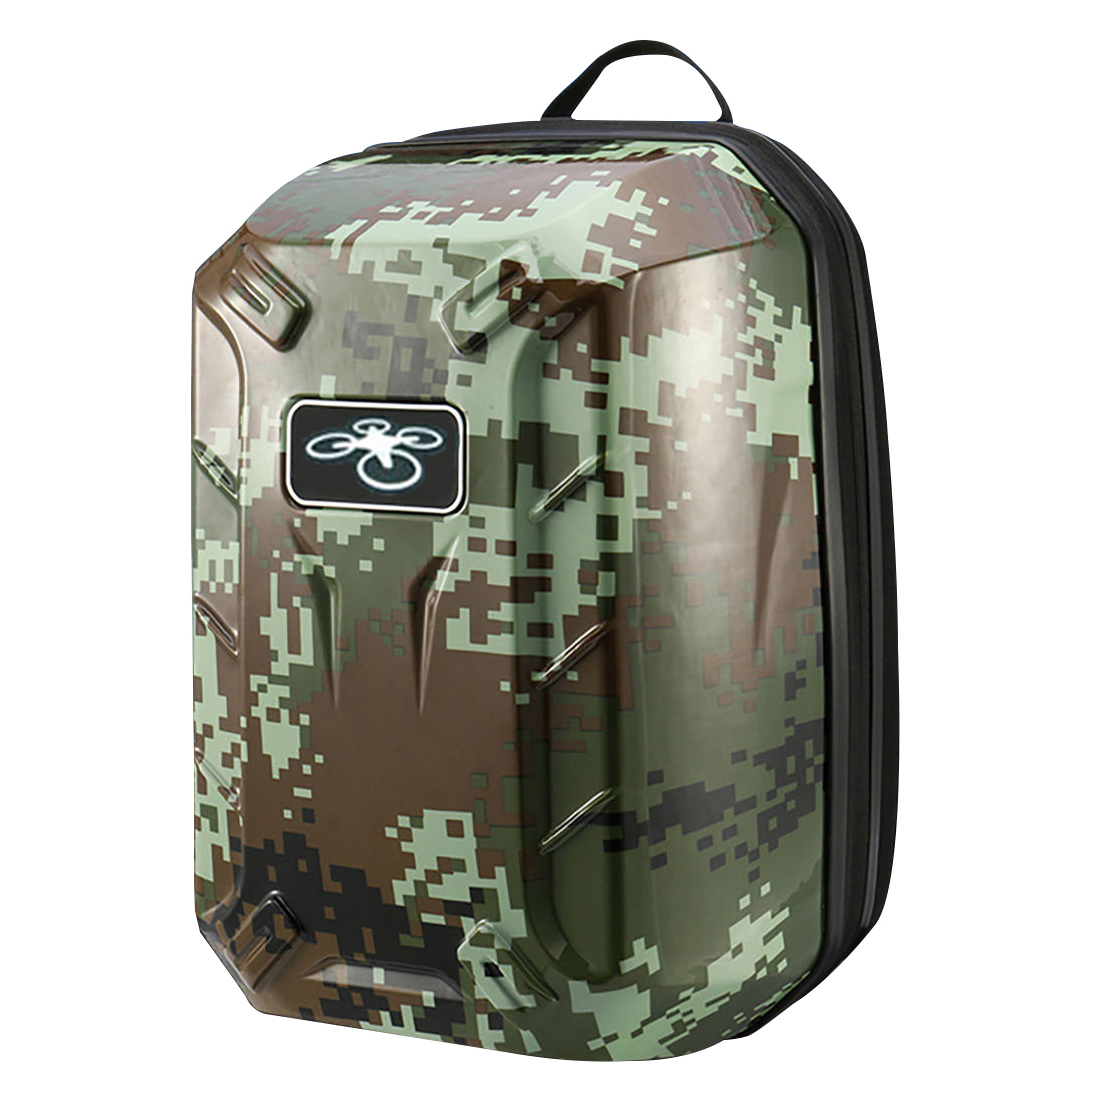 5x  ing Waterproof Backpack Shoulder Bag Hard Shell Case For DJI Phantom 3Color:Army green